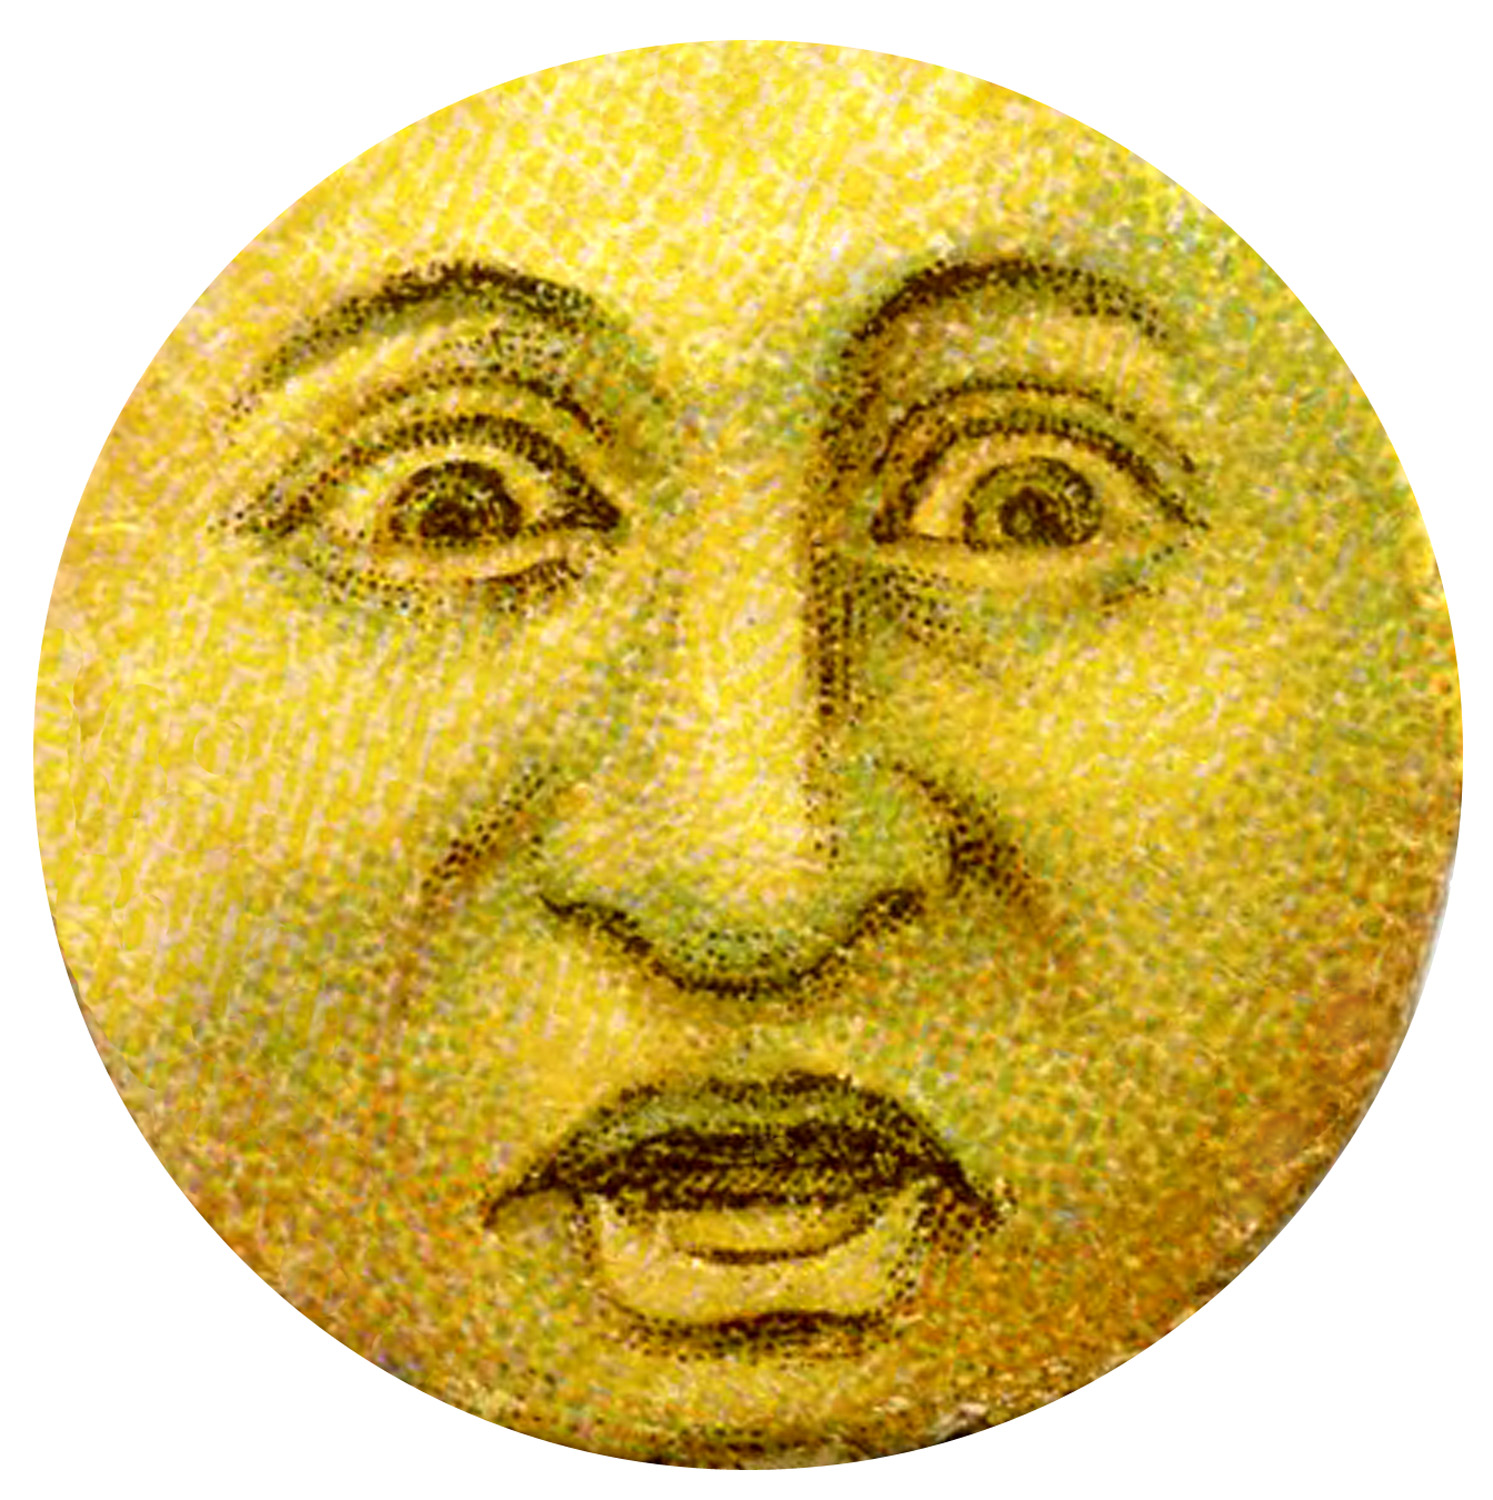 man in the moon clipart - photo #24